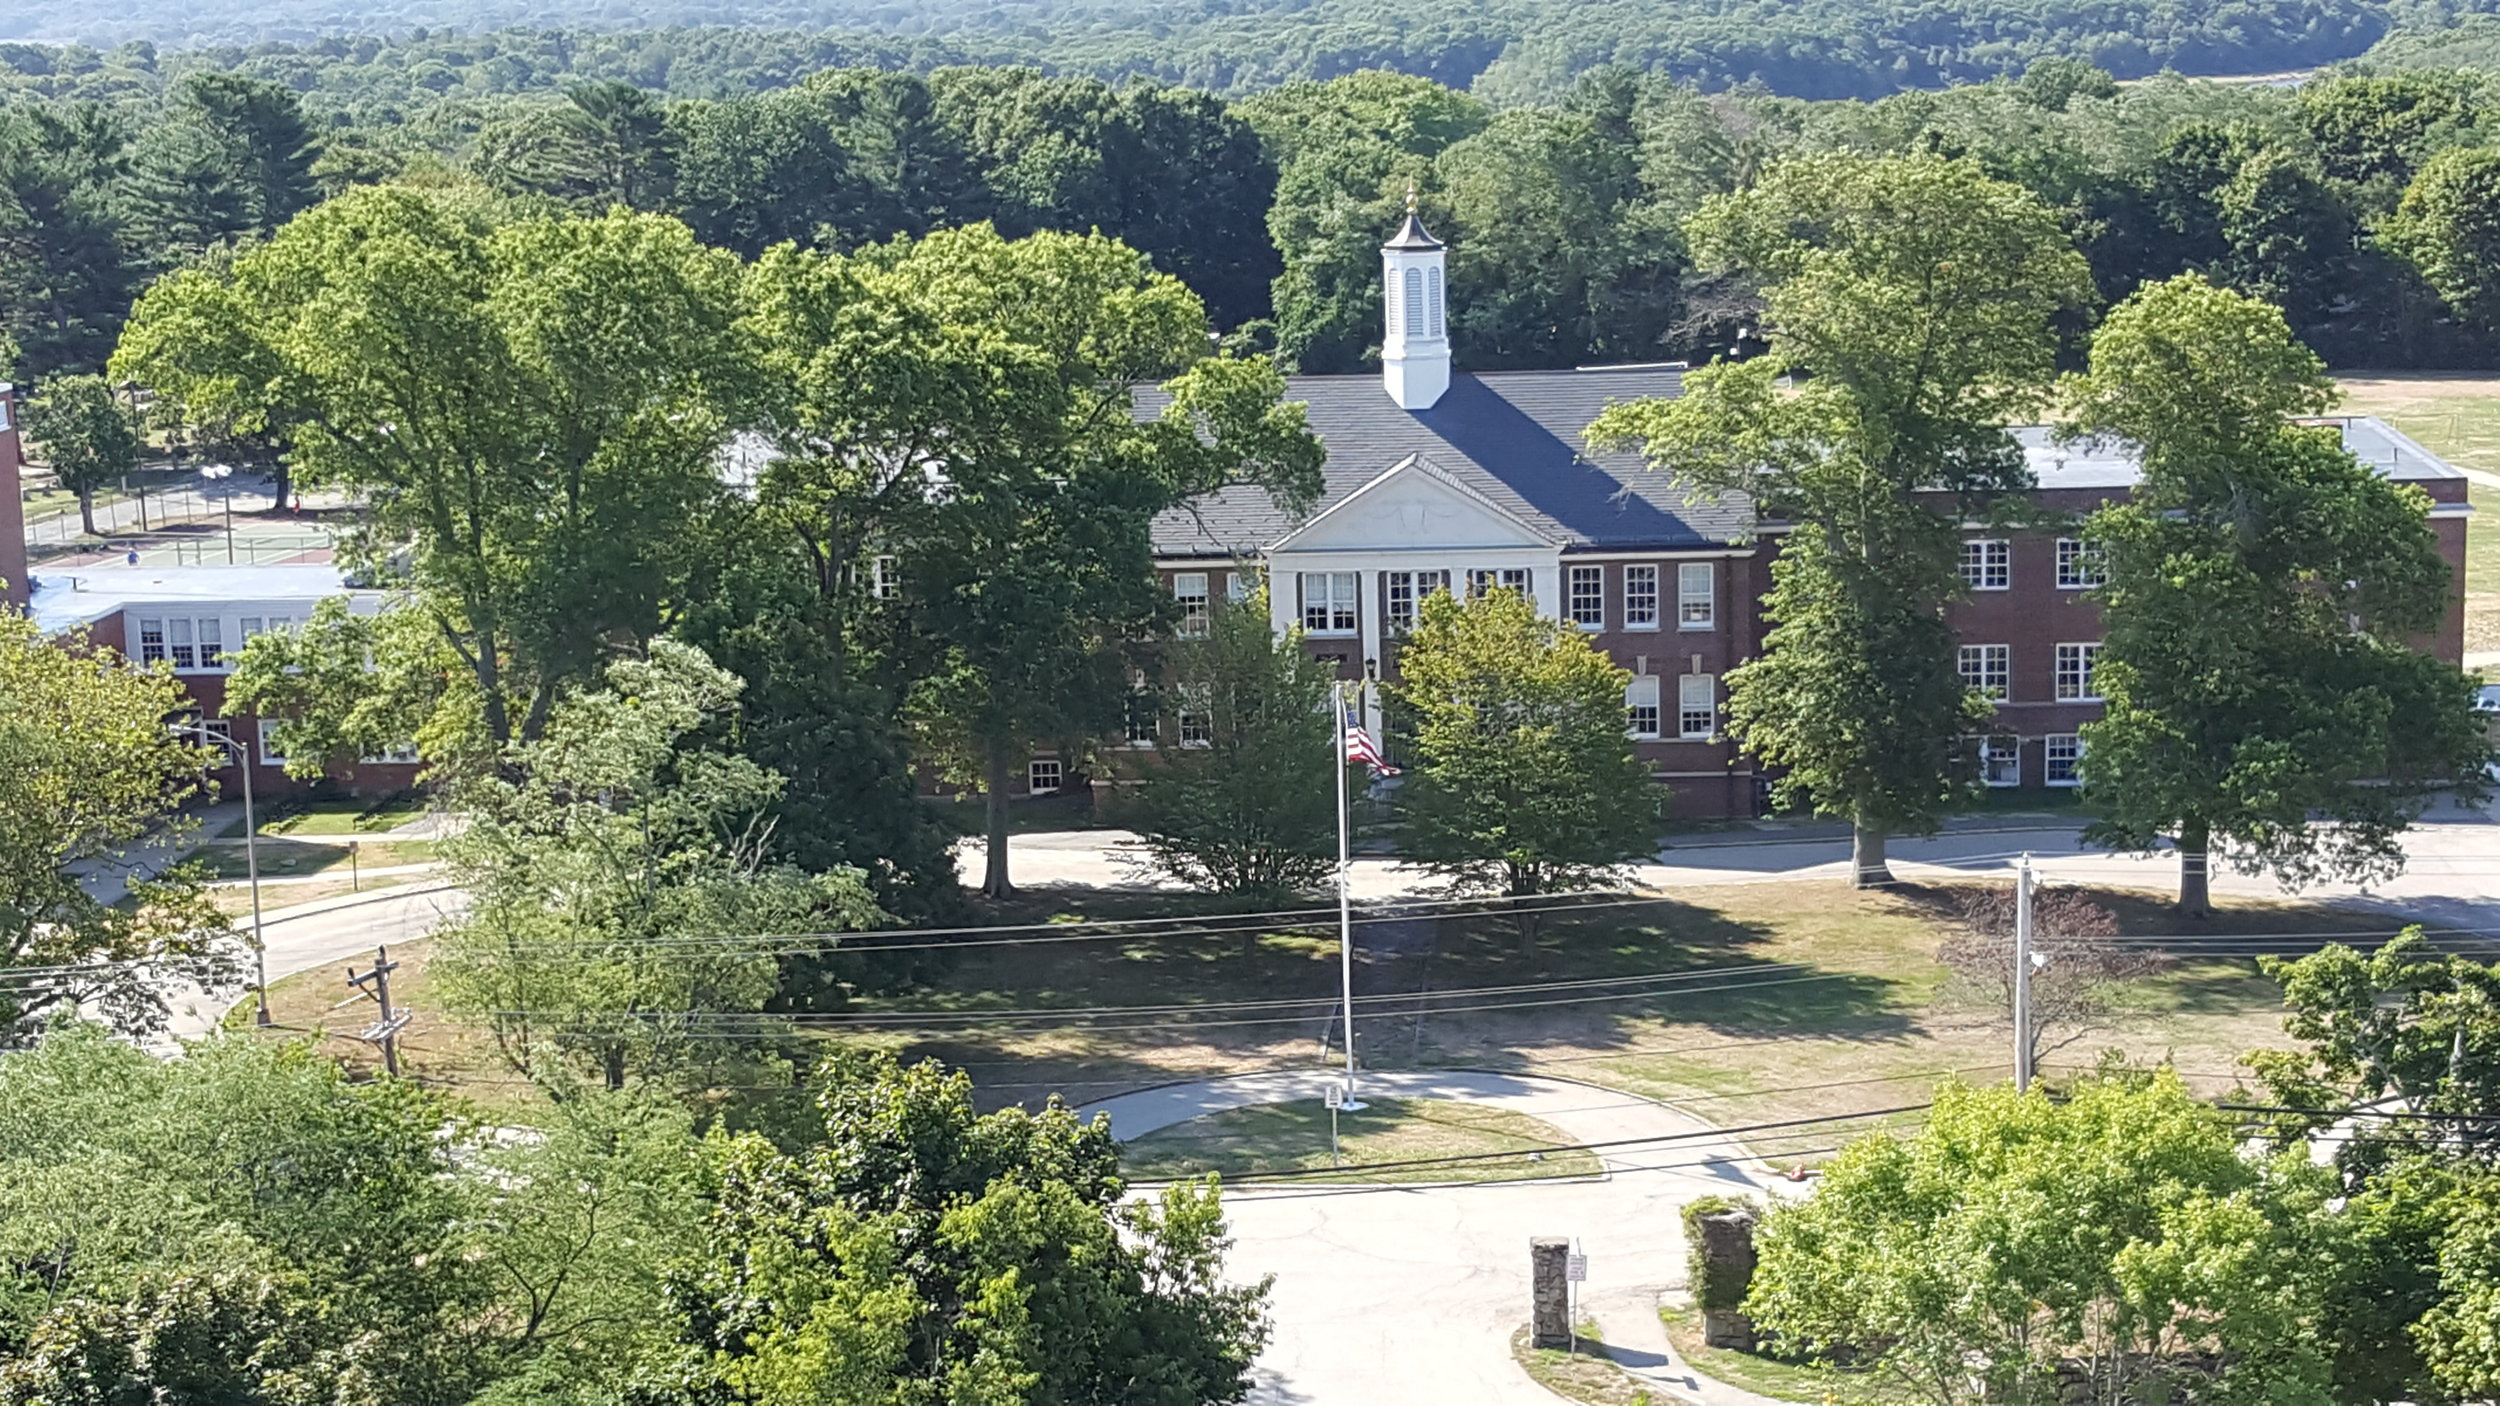 Lester J. Gates School from Lawson Tower